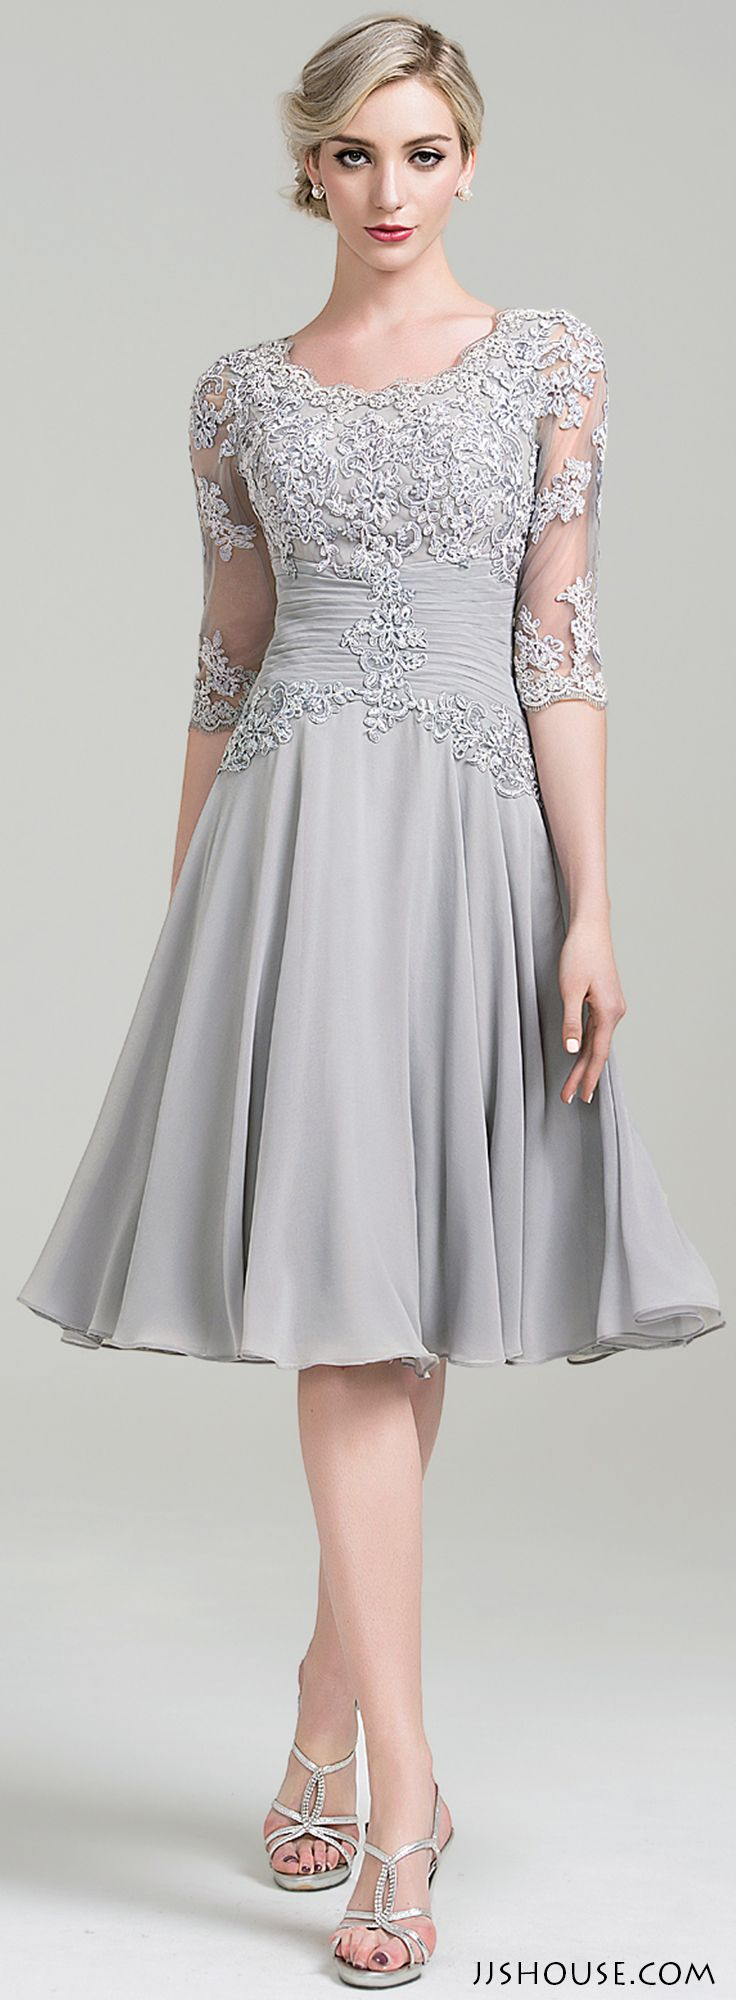 Mother Of The Bride Dresses Knee Length Gray | www ...